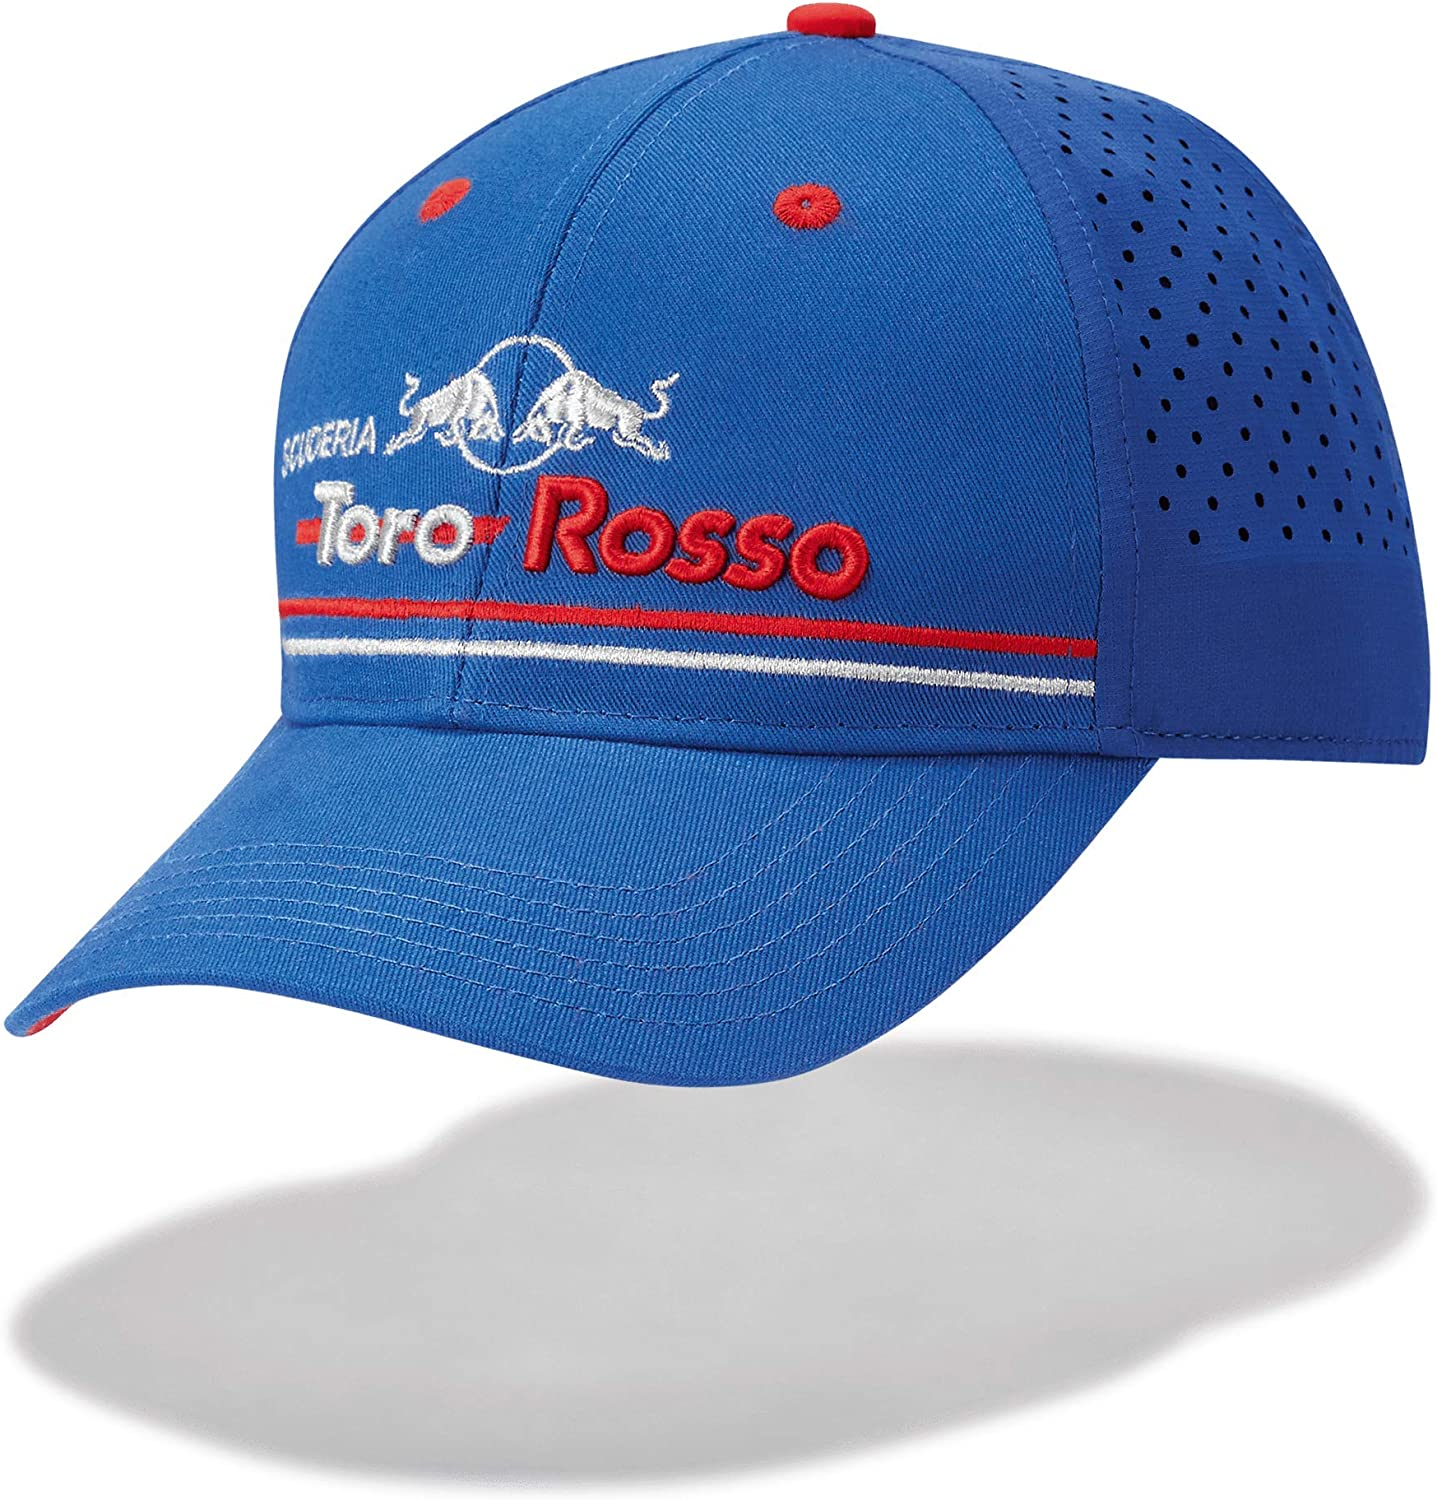 Red Bull Toro Rosso Official Team Gorra Perforated, Azul Unisexo ...